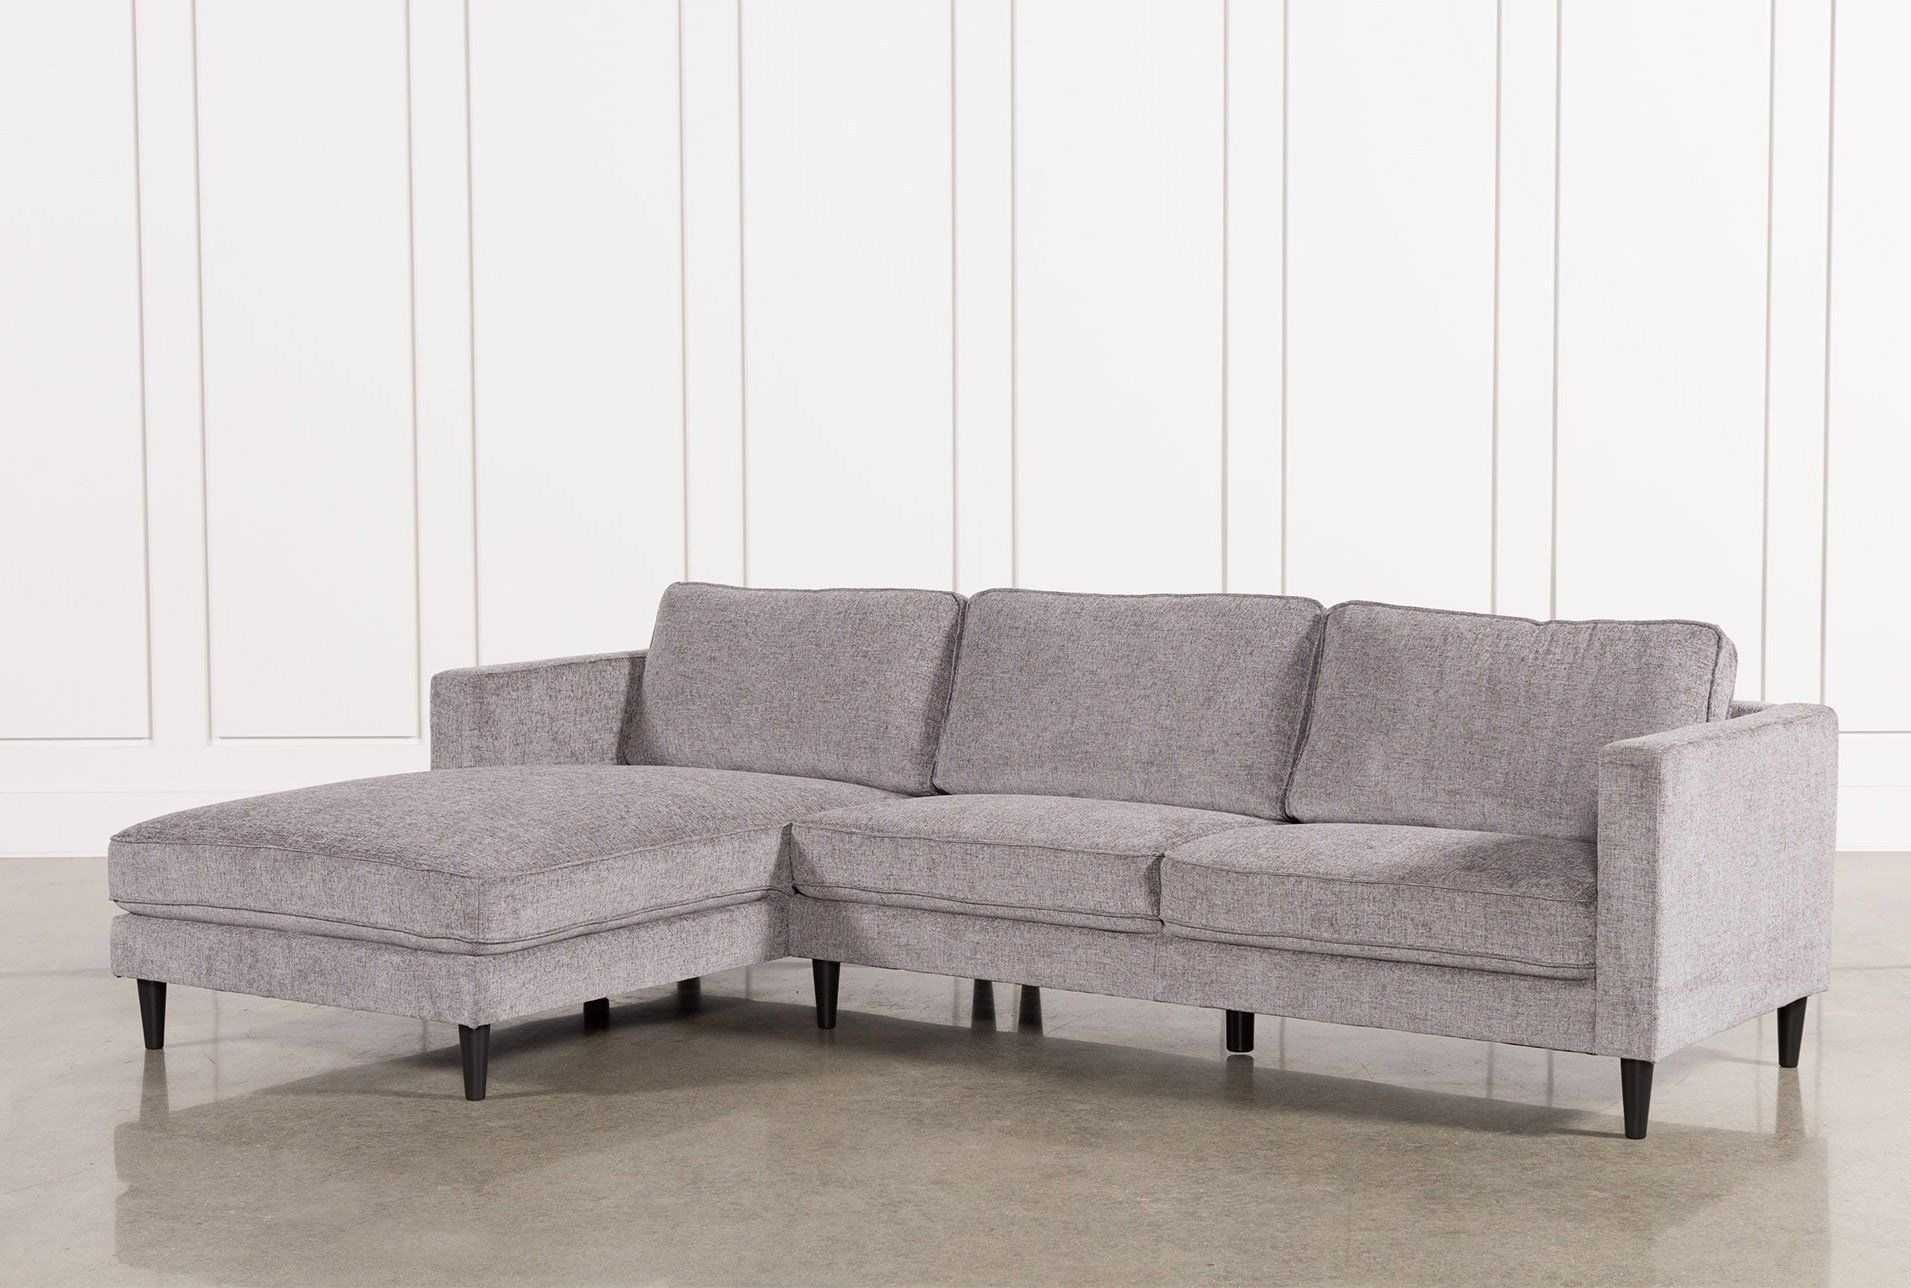 Cosmos Grey 2 Piece Sectional W/laf Chaise | Couches | Pinterest With Regard To Avery 2 Piece Sectionals With Raf Armless Chaise (Image 8 of 25)